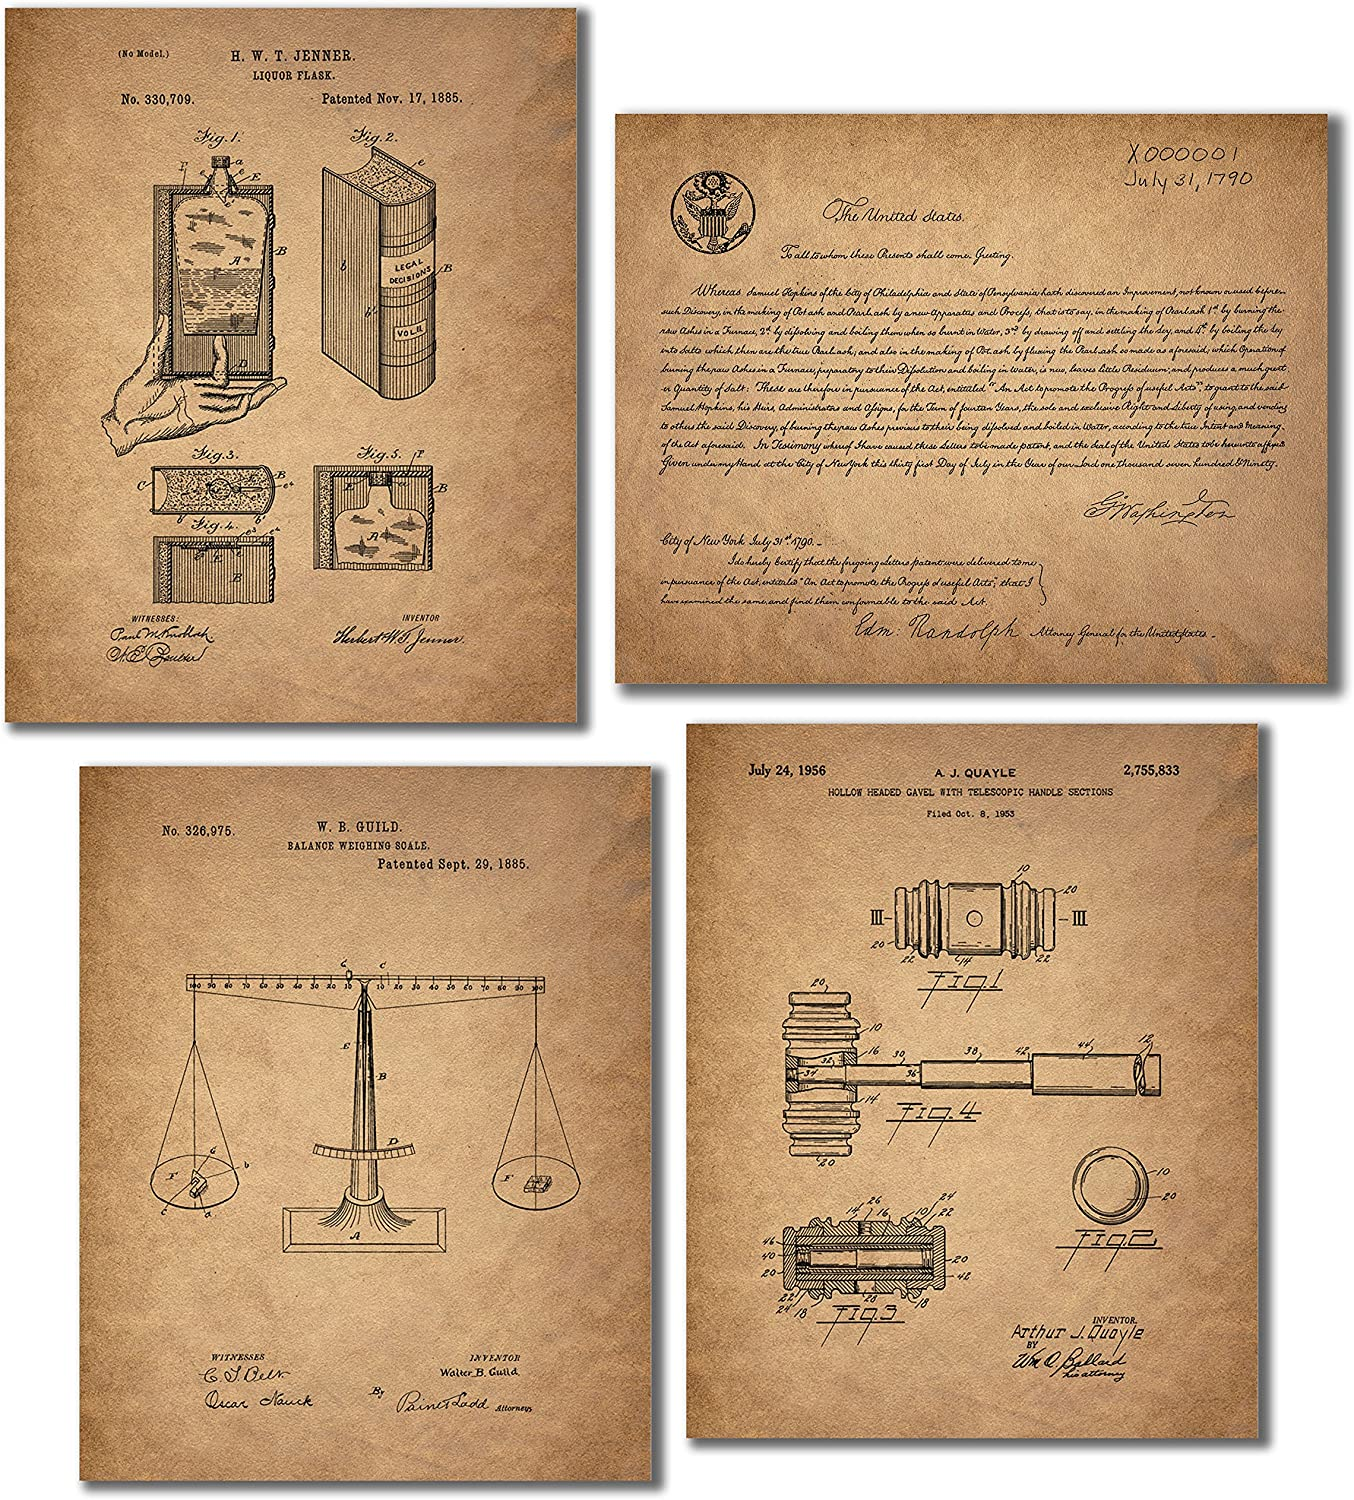 Lawyer - Paralegals - Legal Assistants Patent Wall Art Prints - Set of 4 Vintage Photos